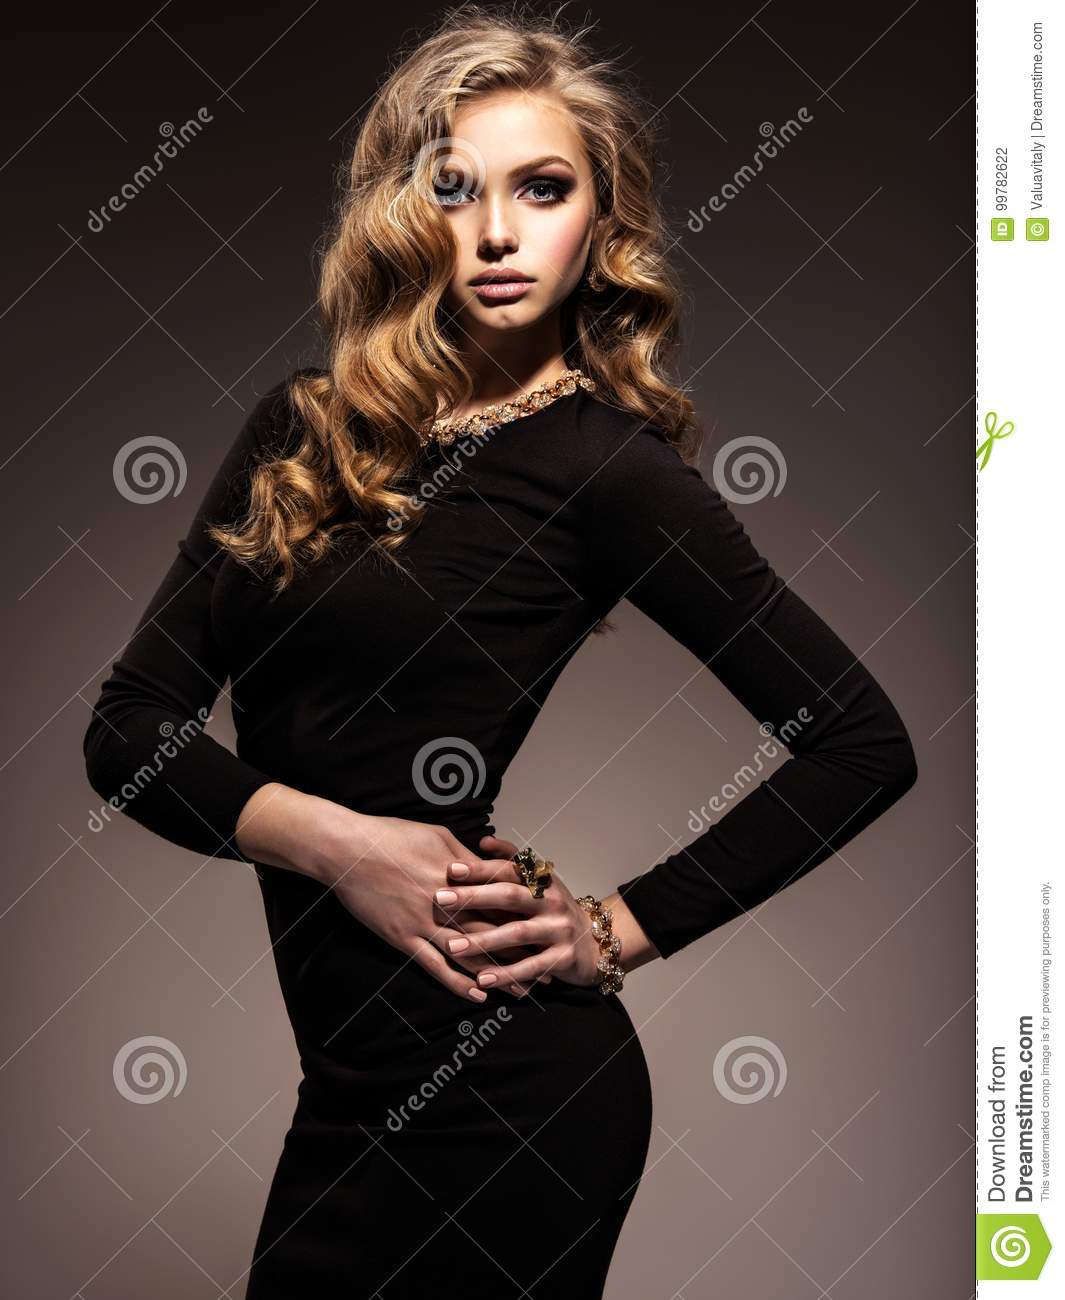 Beautiful woman in black bodycon dress with long curly hair